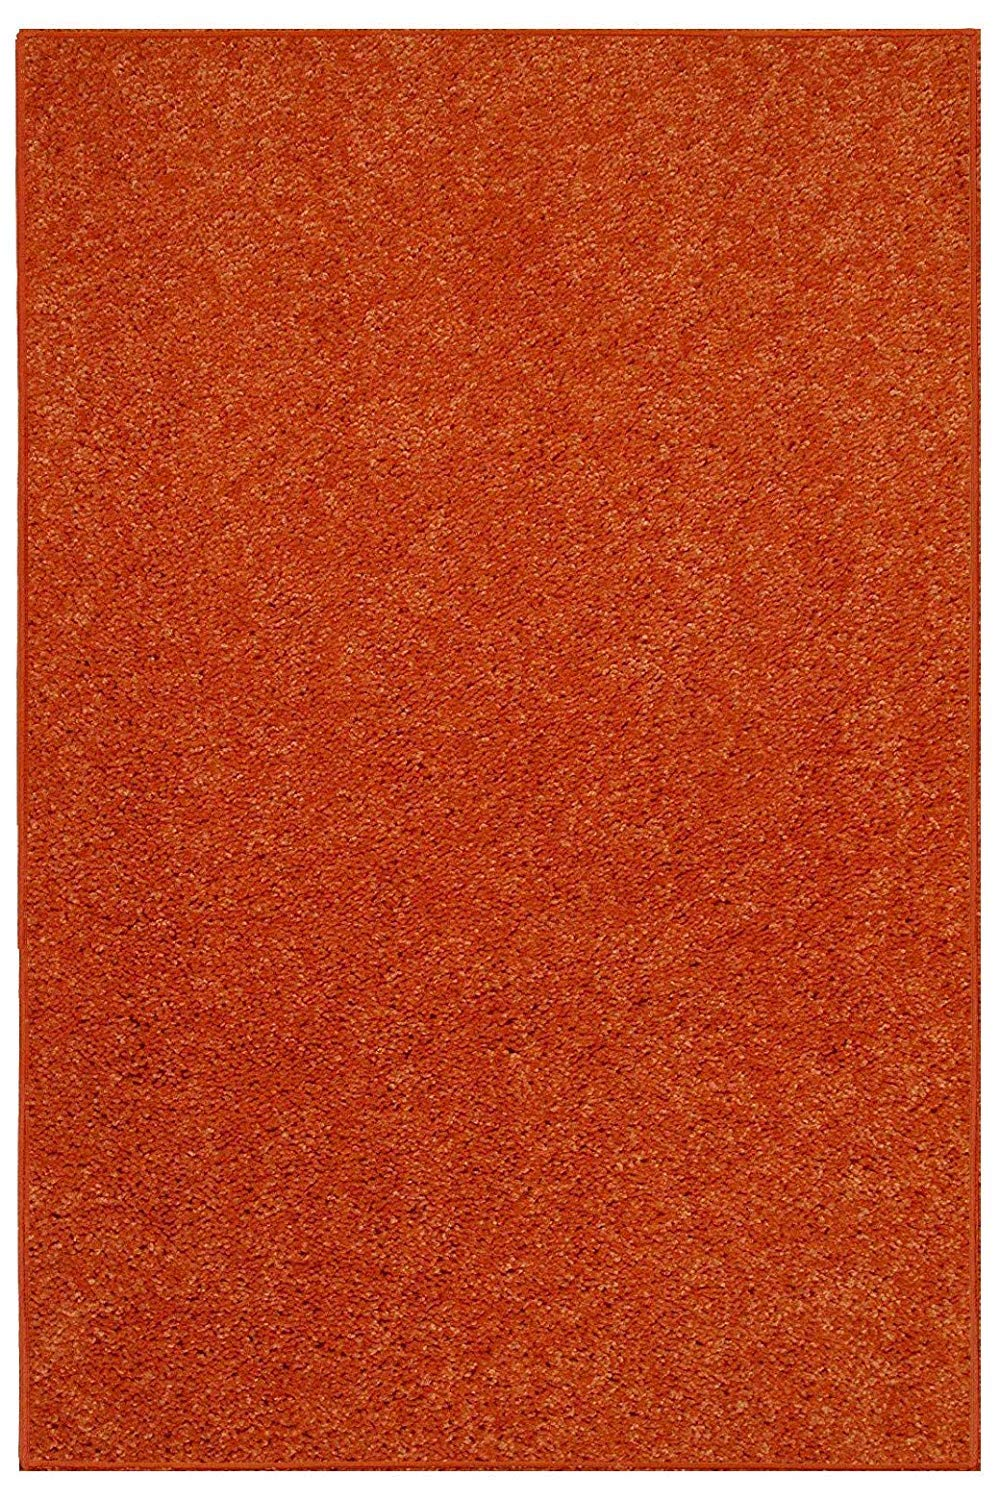 d0185715f7f3a Maple Home Area Rug Indoor, Living Room, Bedroom Polyester - 2'x4' Orange